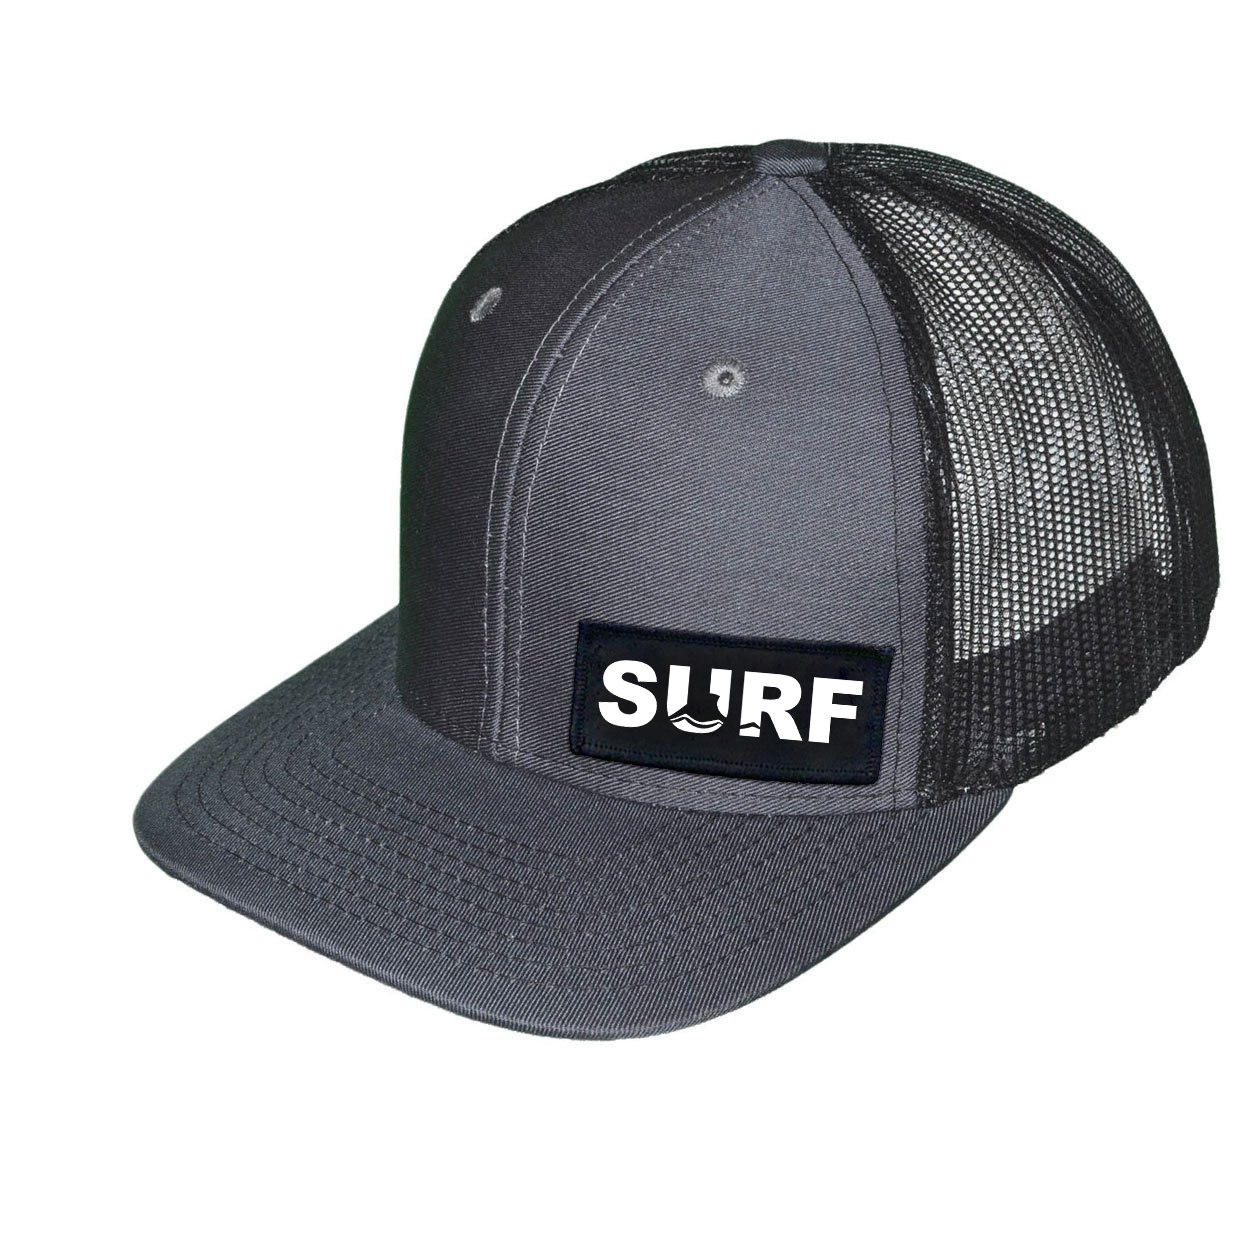 Surf Wave Logo Night Out Woven Patch Snapback Trucker Hat Dark Gray/Black (White Logo)